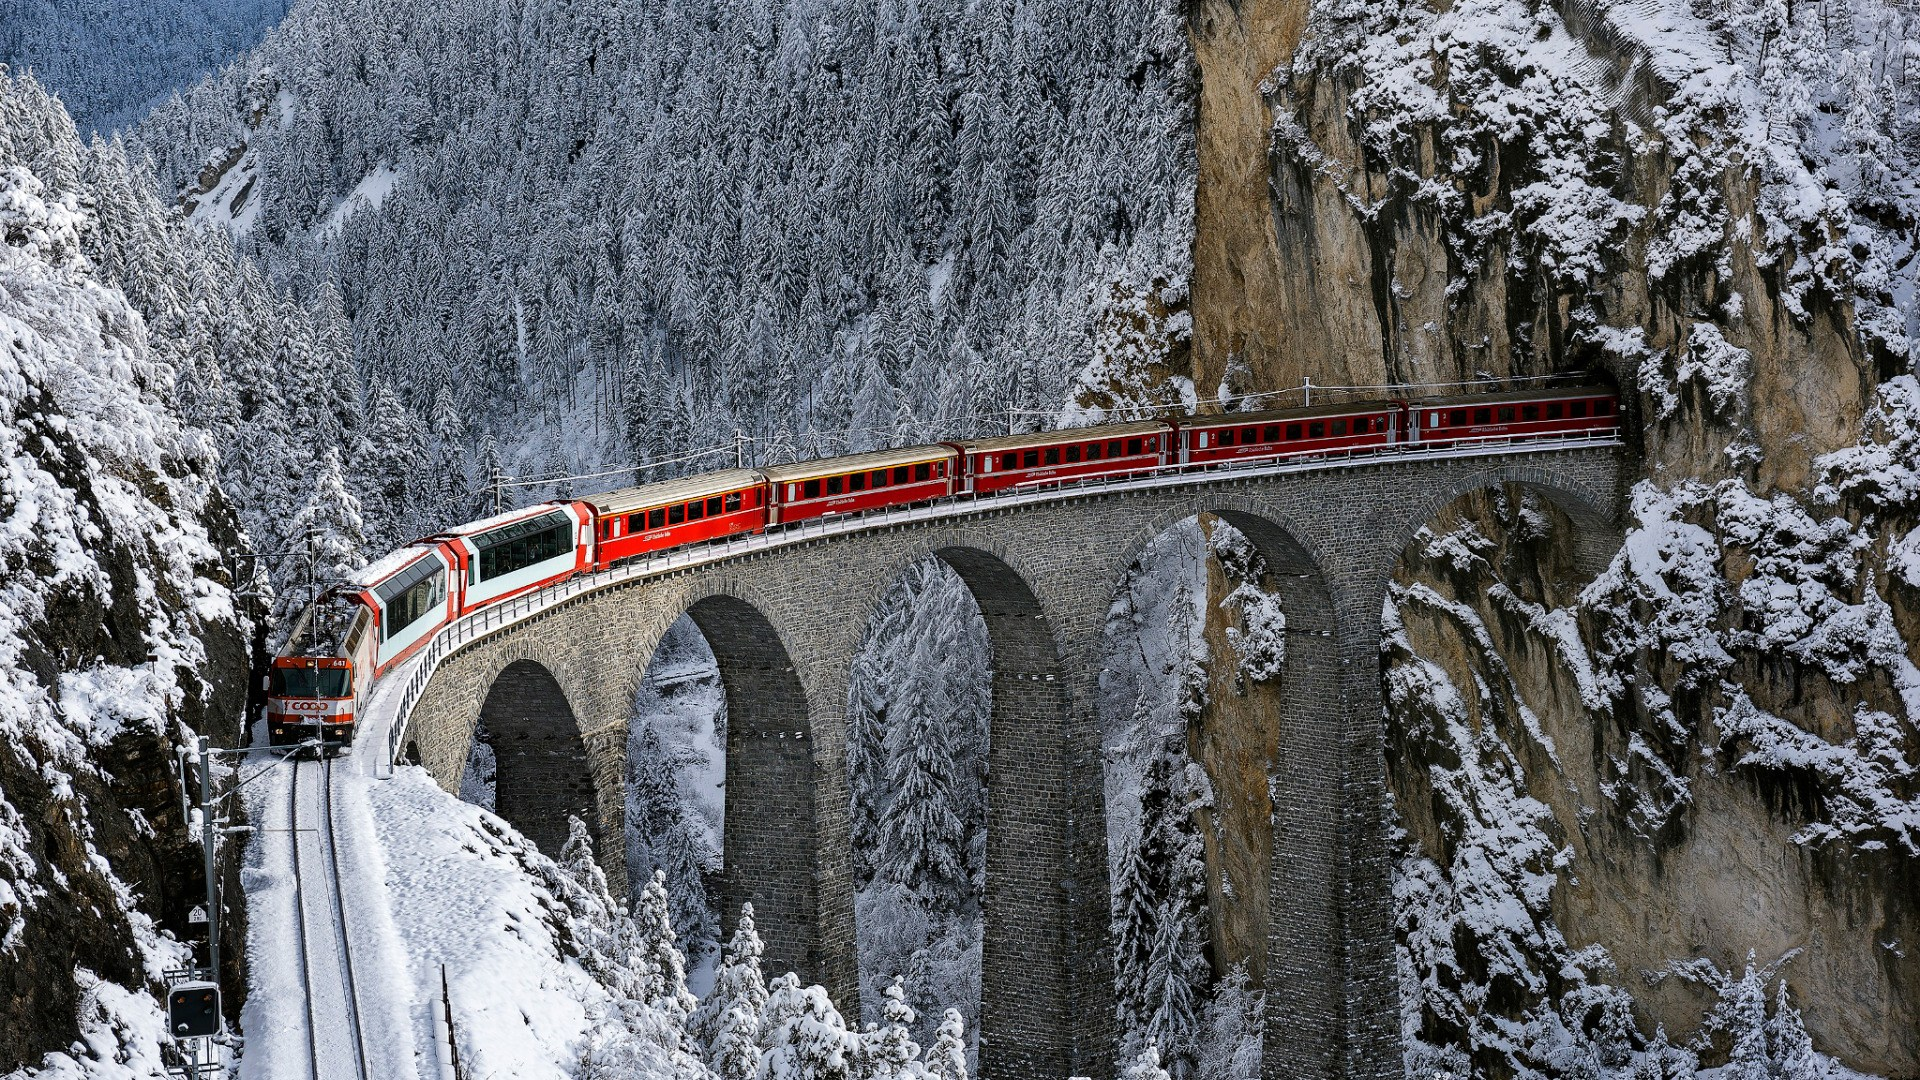 36 Days To Christmas The Best Places To Visit In Switzerland 3 Days To Christmas days to christmas 33 Days To Christmas: The Best Places To Visit In Switzerland 🎁 36 Days To Christmas The Best Places To Visit In Switzerland 3